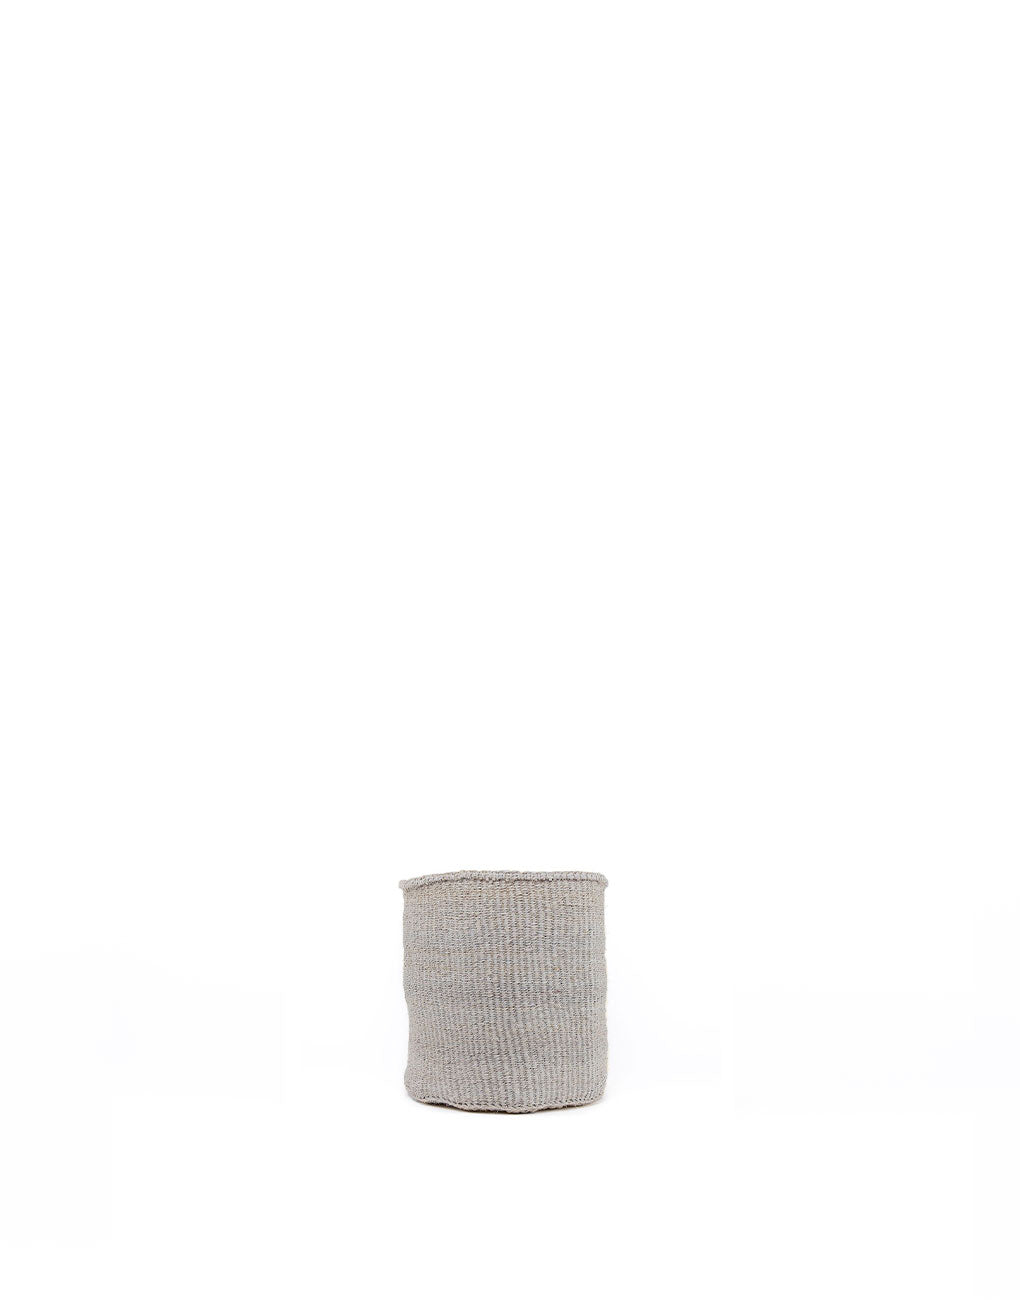 3in Solid Sisal Basket - Gray | The Little Market